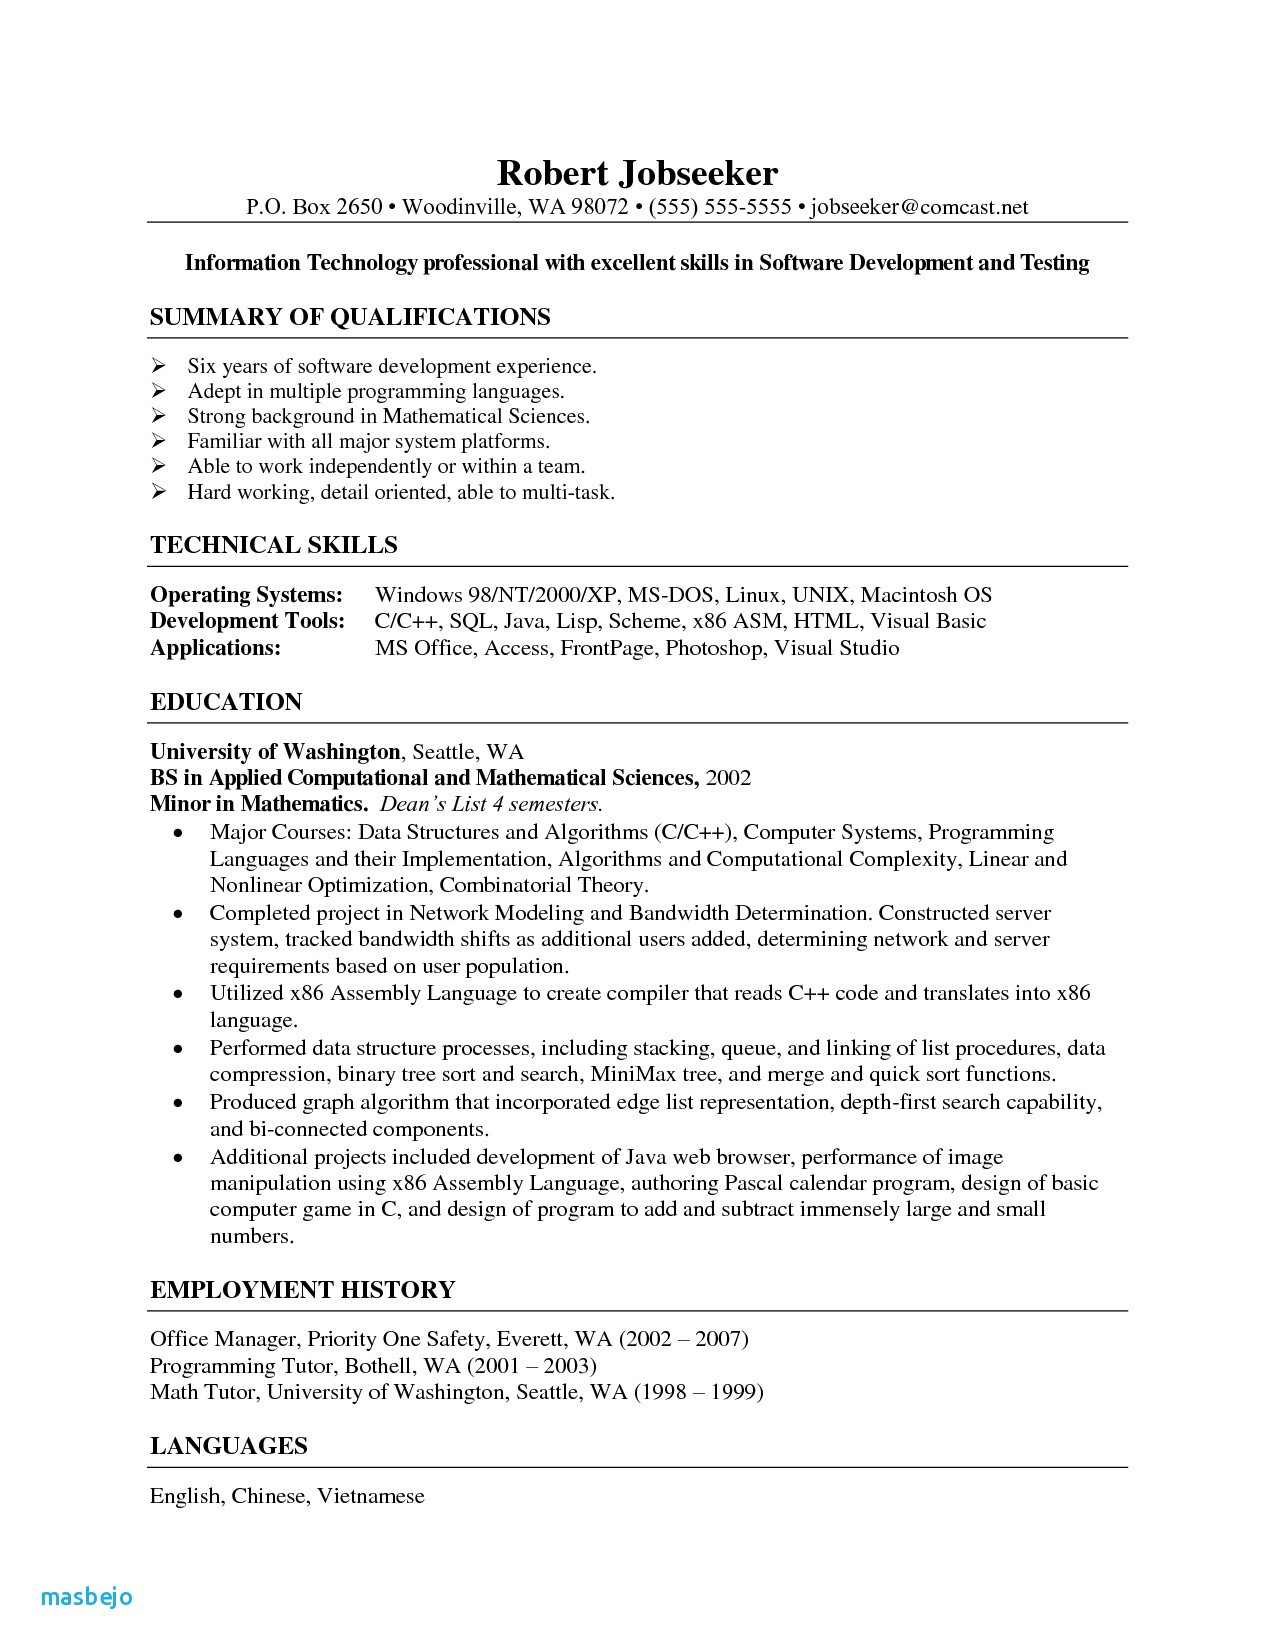 Medical Biller Resume Template - Medical Coding Fresher Resume Samples Resume Resume Examples